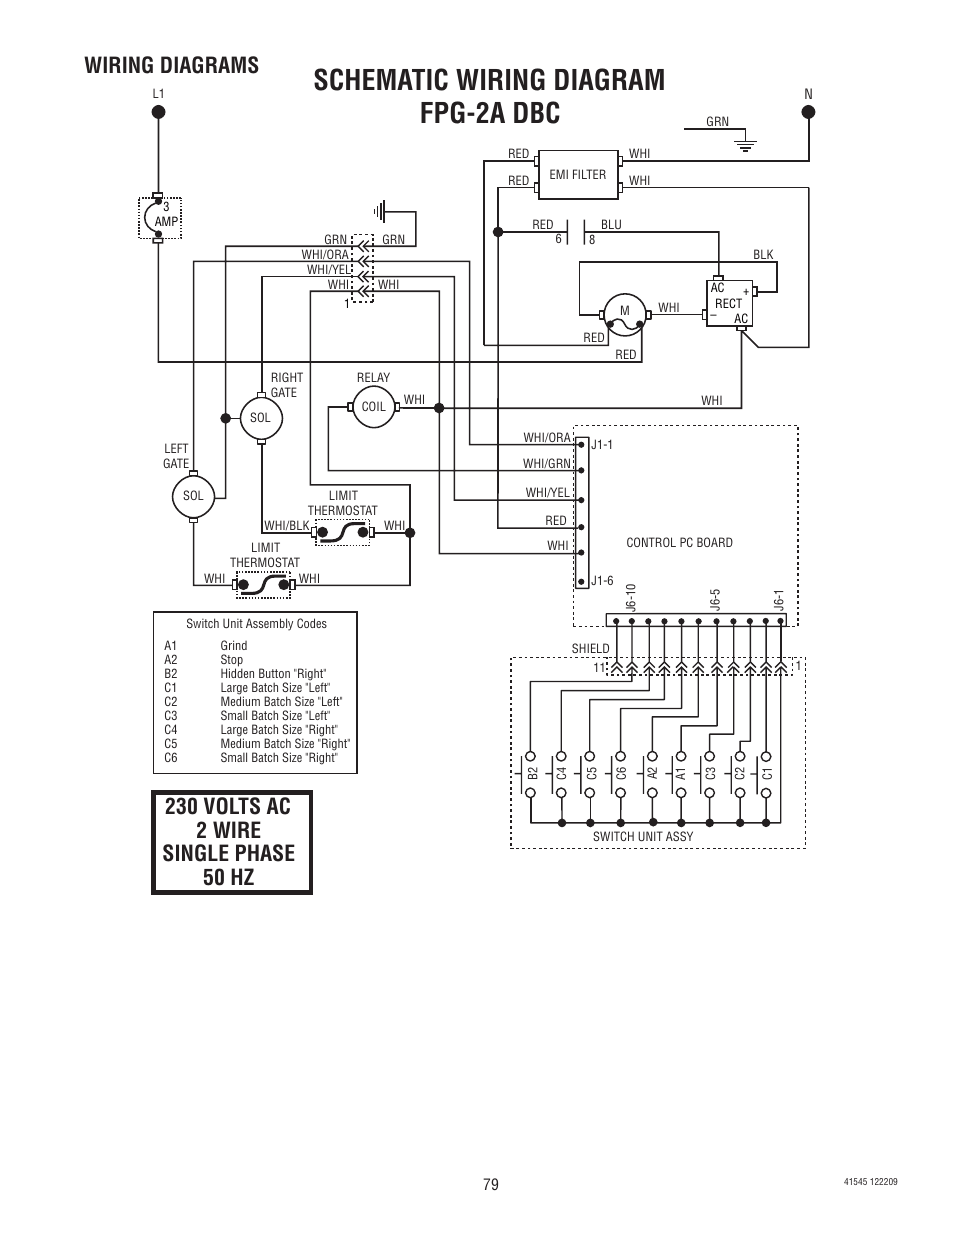 hight resolution of schematic wiring diagram fpg 2a dbc wiring diagrams bunn g9 2t dbc user manual page 79 79